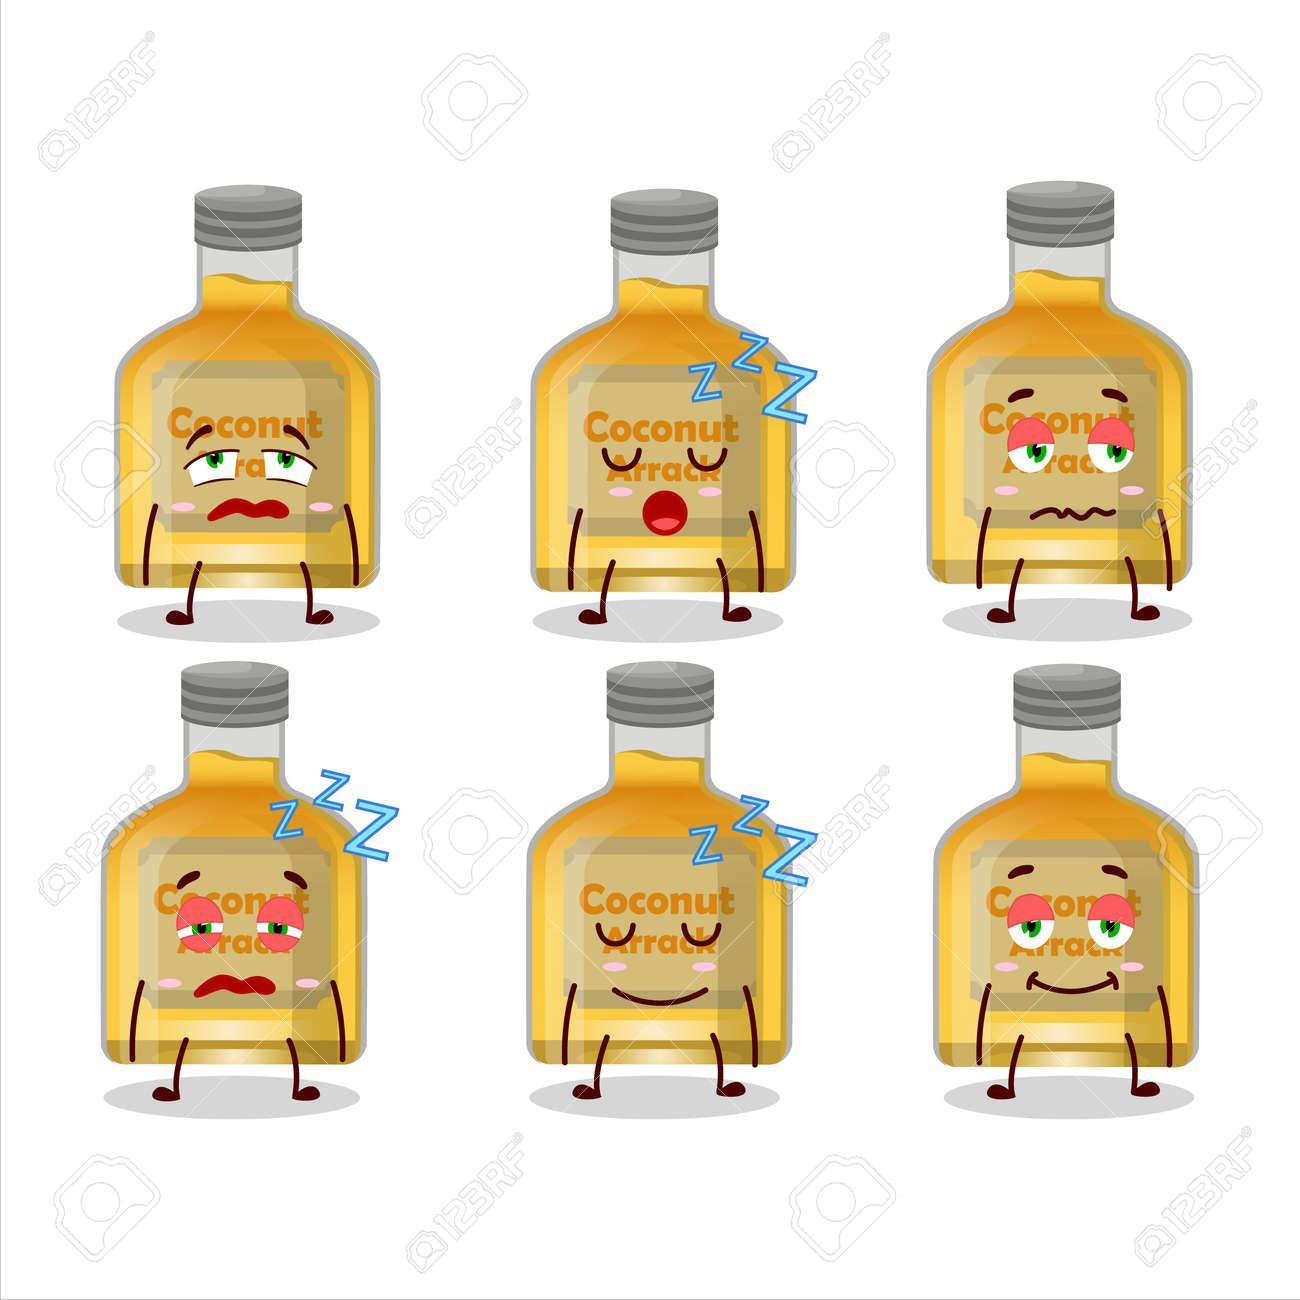 Cartoon character of coconut arrack with sleepy expression. Vector illustration - 173228602